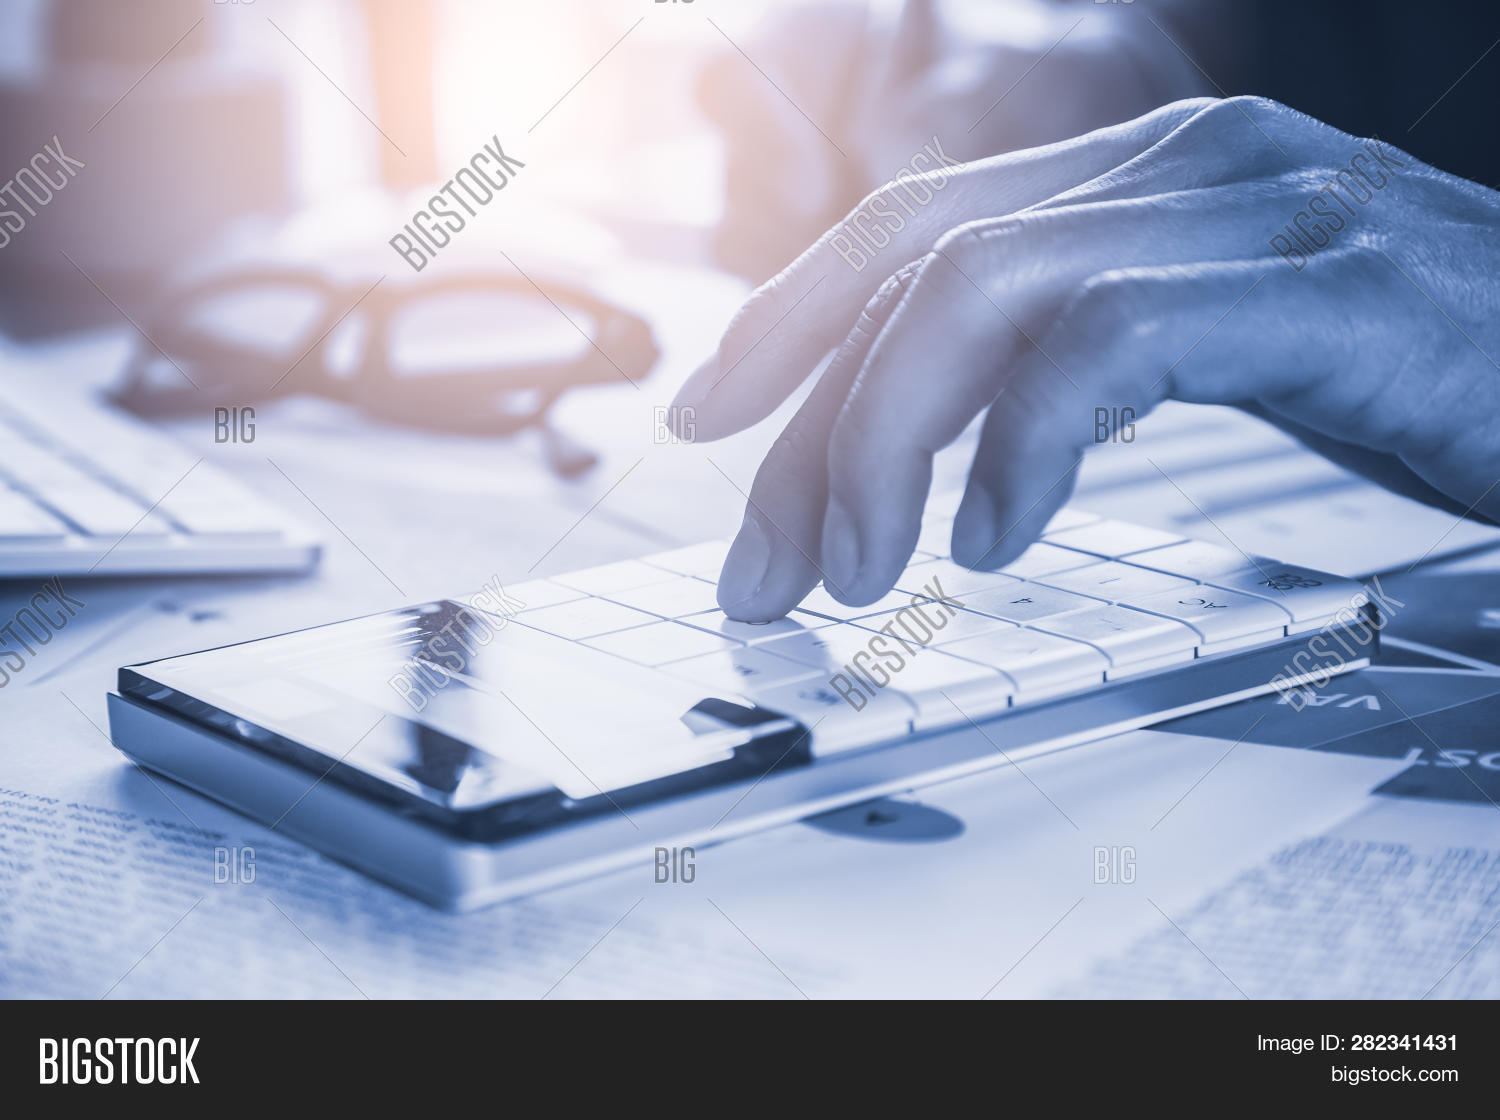 usinessman or accountant working on calculator to calculate accounting and business finance plan sales. Accounting,investment advisor consulting on the financial report and plan a marketing plan at office. Business accounting plan idea concept.